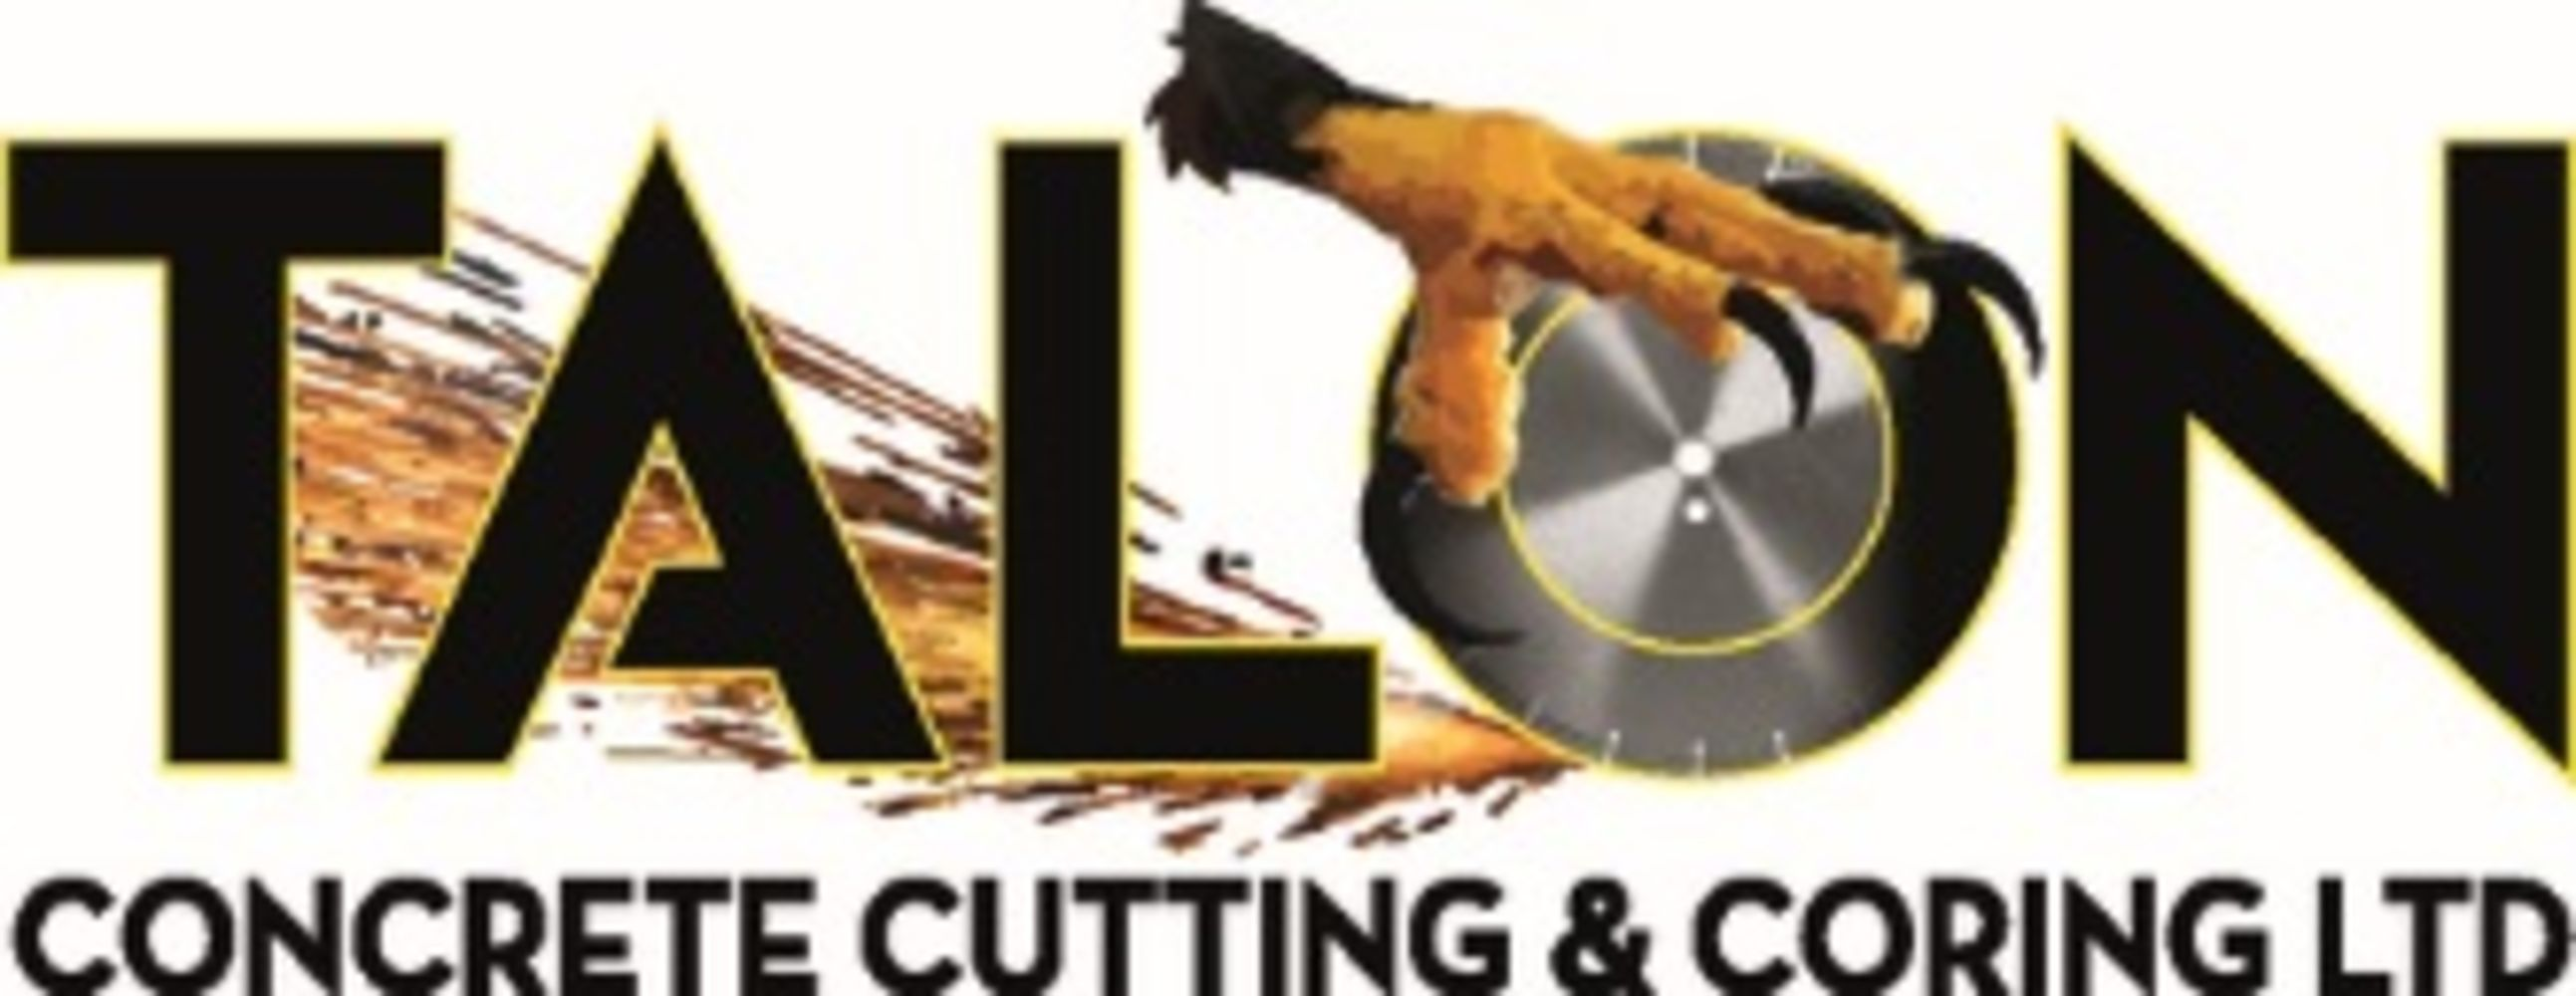 Day 2 - Unreserved Timed Online Auction of Talon Concrete Cutting & Coring